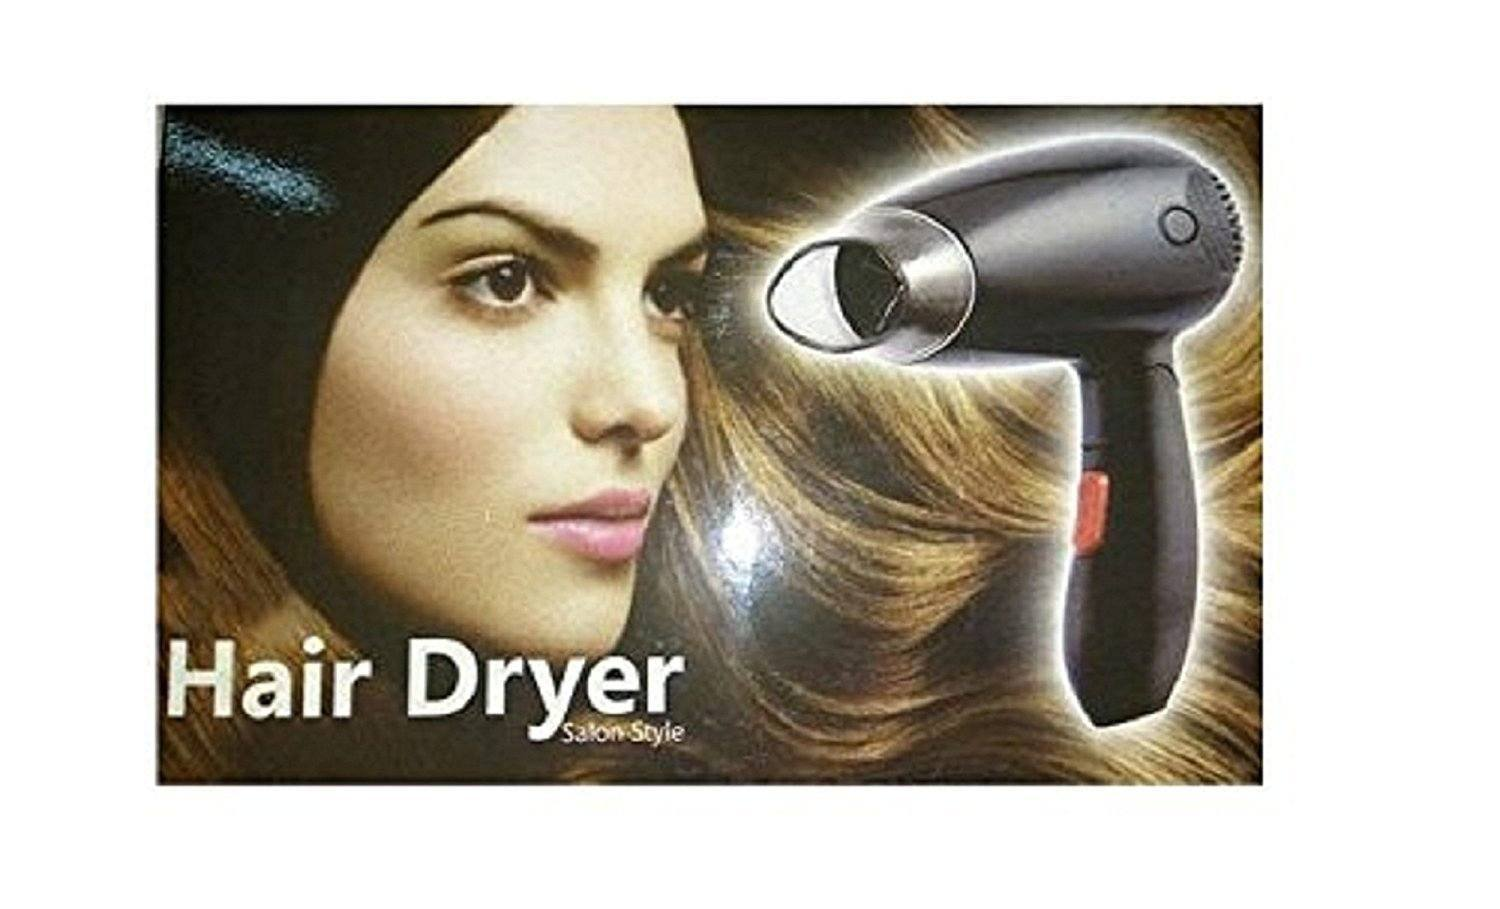 Hair Dryer - Tuzech CONOR Quick Hair Dryer